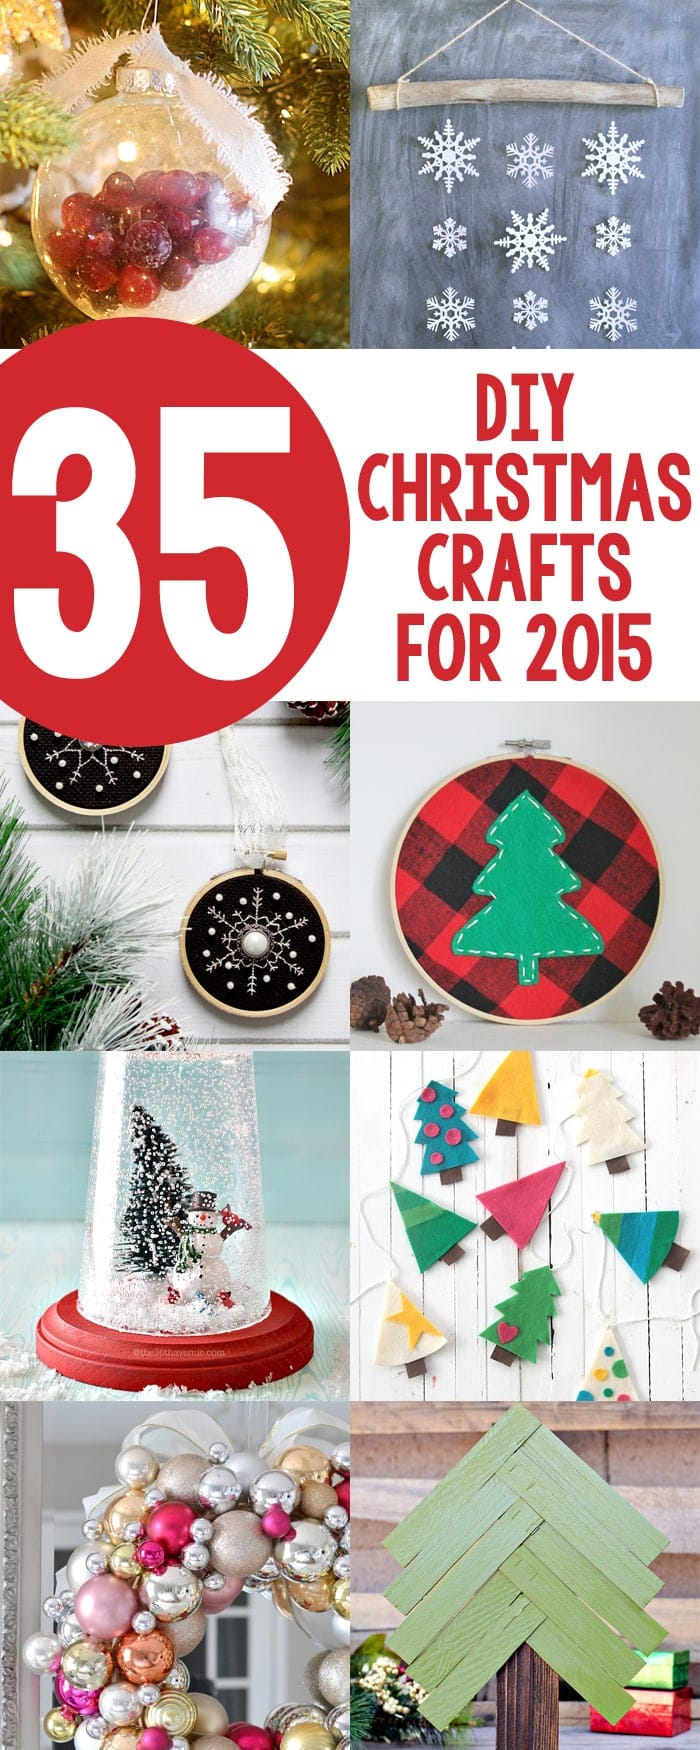 35 diy christmas crafts for 2015 new christmas projects from the past year